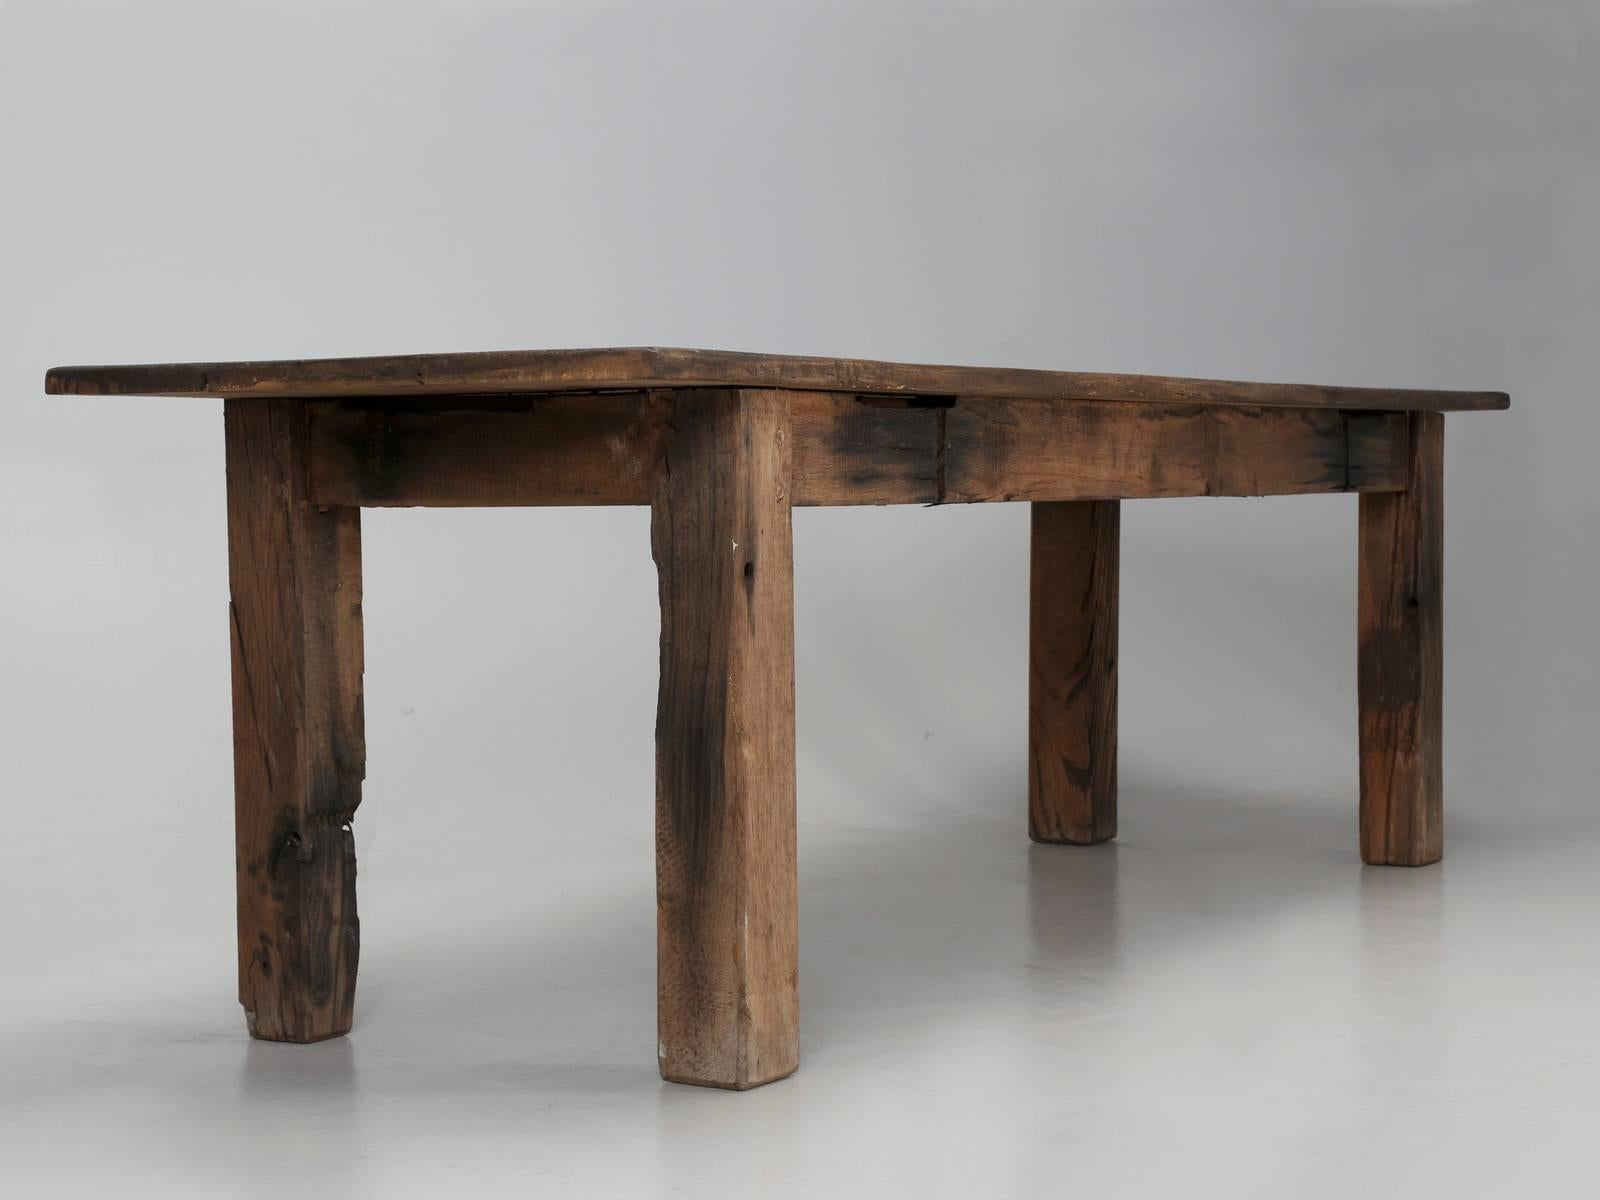 Antique French Industrial Work Table Or Rustic Farm Dining